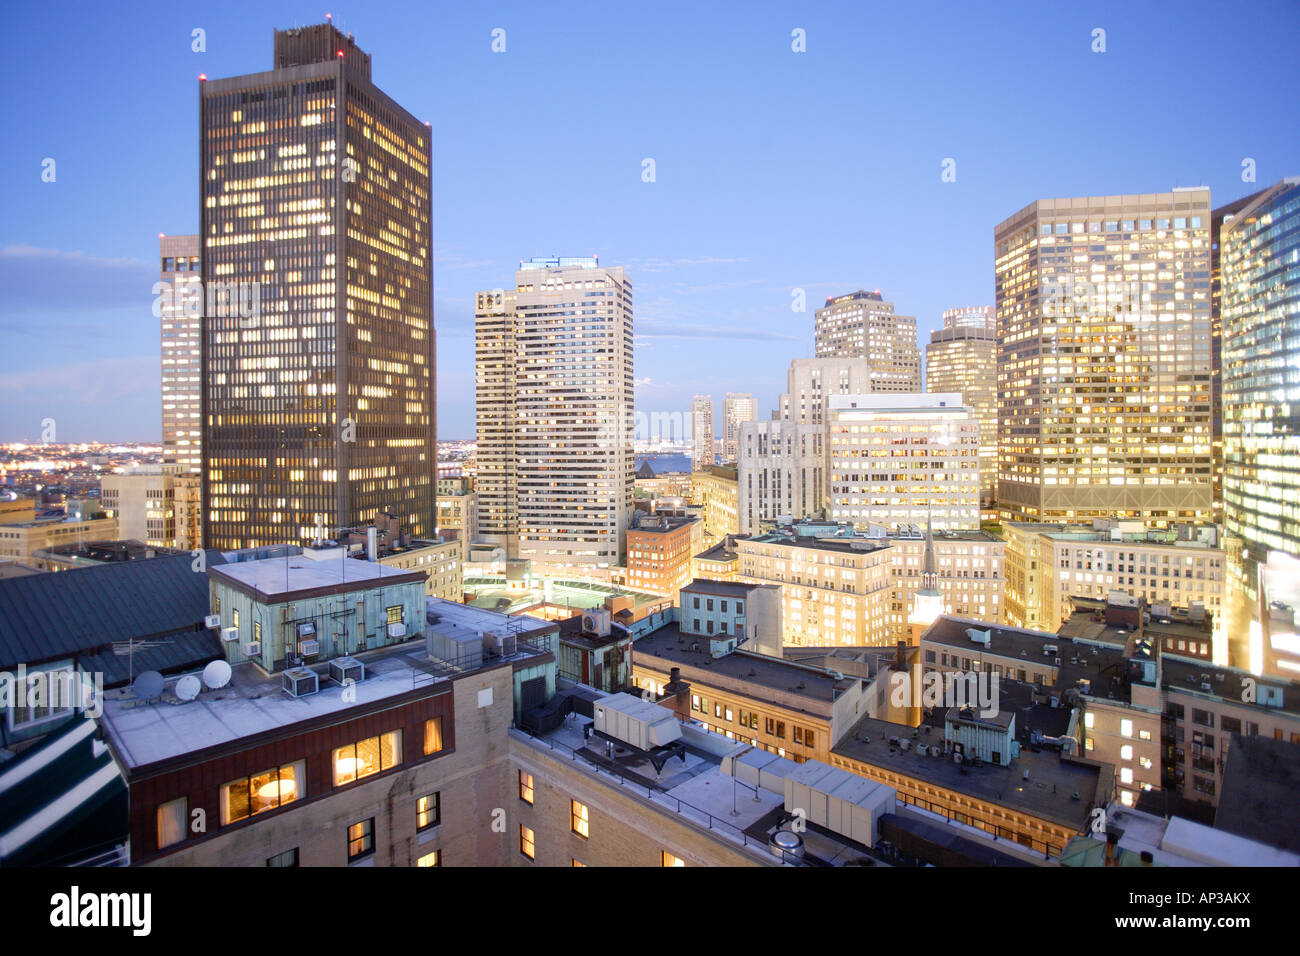 Skyscrapers of Boston financial district in the evening, Boston, Massachusetts, United States, USA - Stock Image